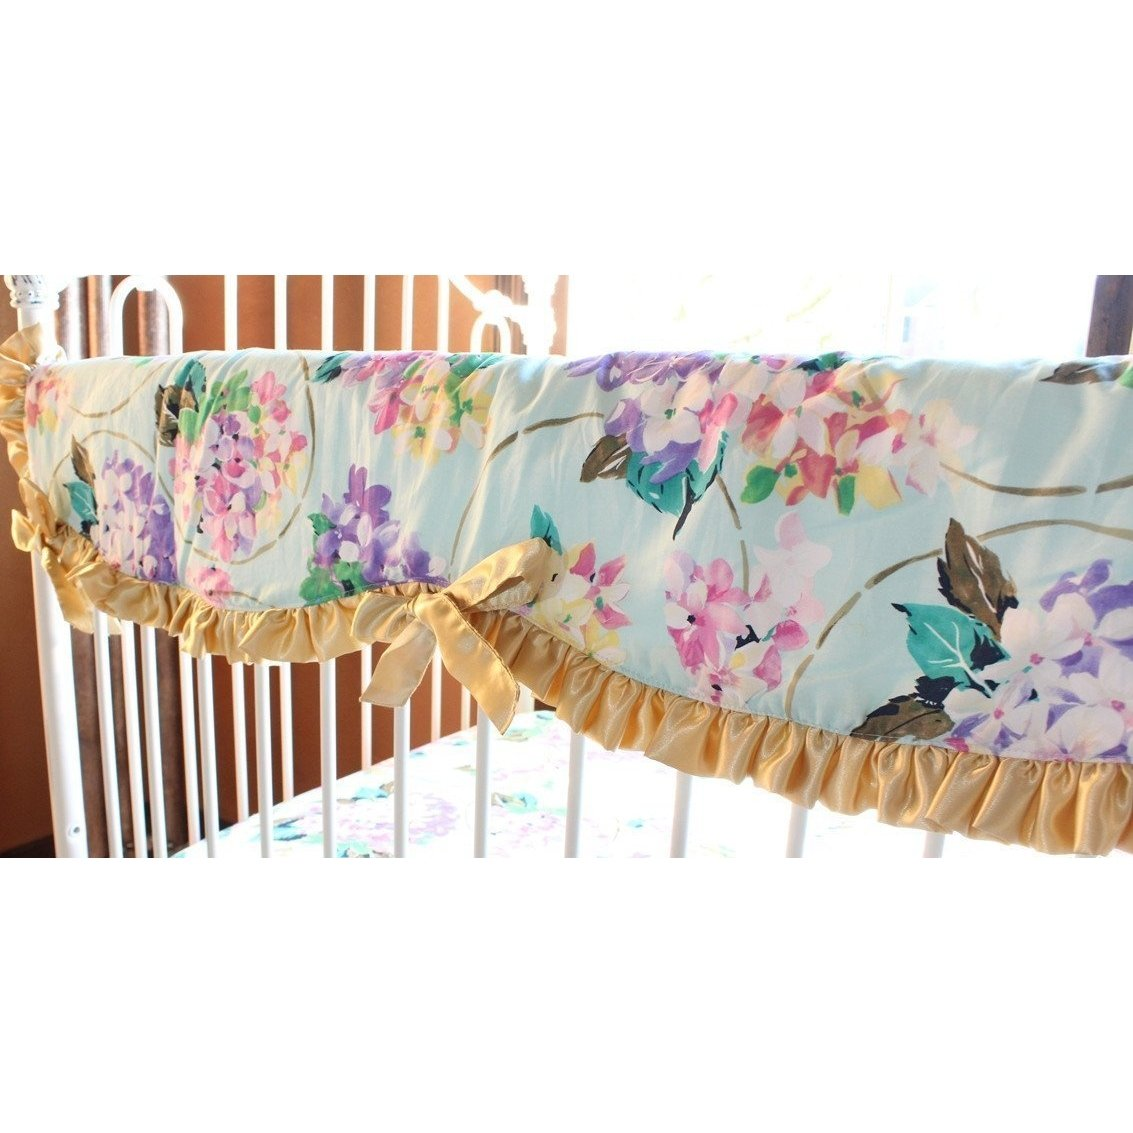 Crib Rail Cover | Cordelia Aqua Baby Bedding-Crib Rail Cover-Gold Edging-Jack and Jill Boutique